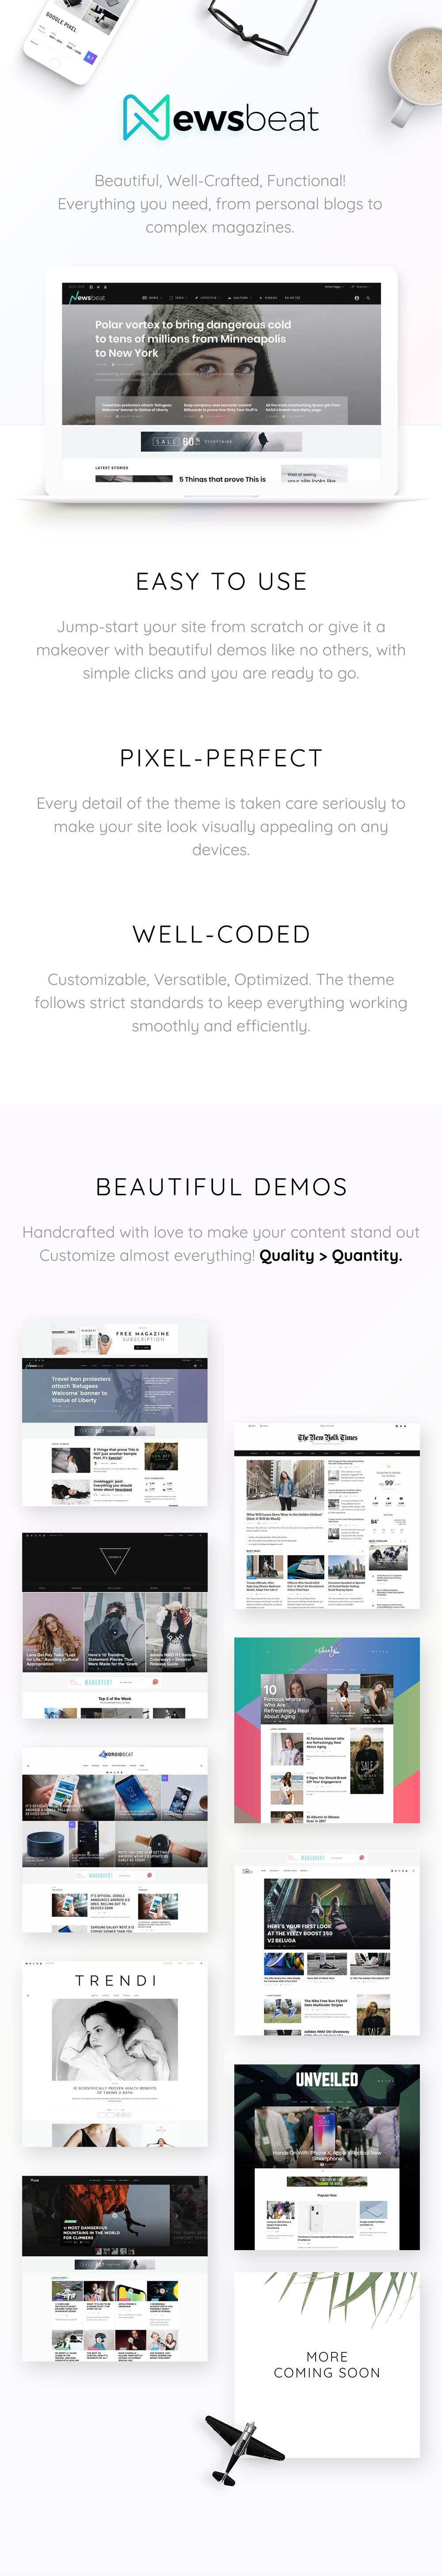 Newsbeat - Optimized WordPress Magazine theme